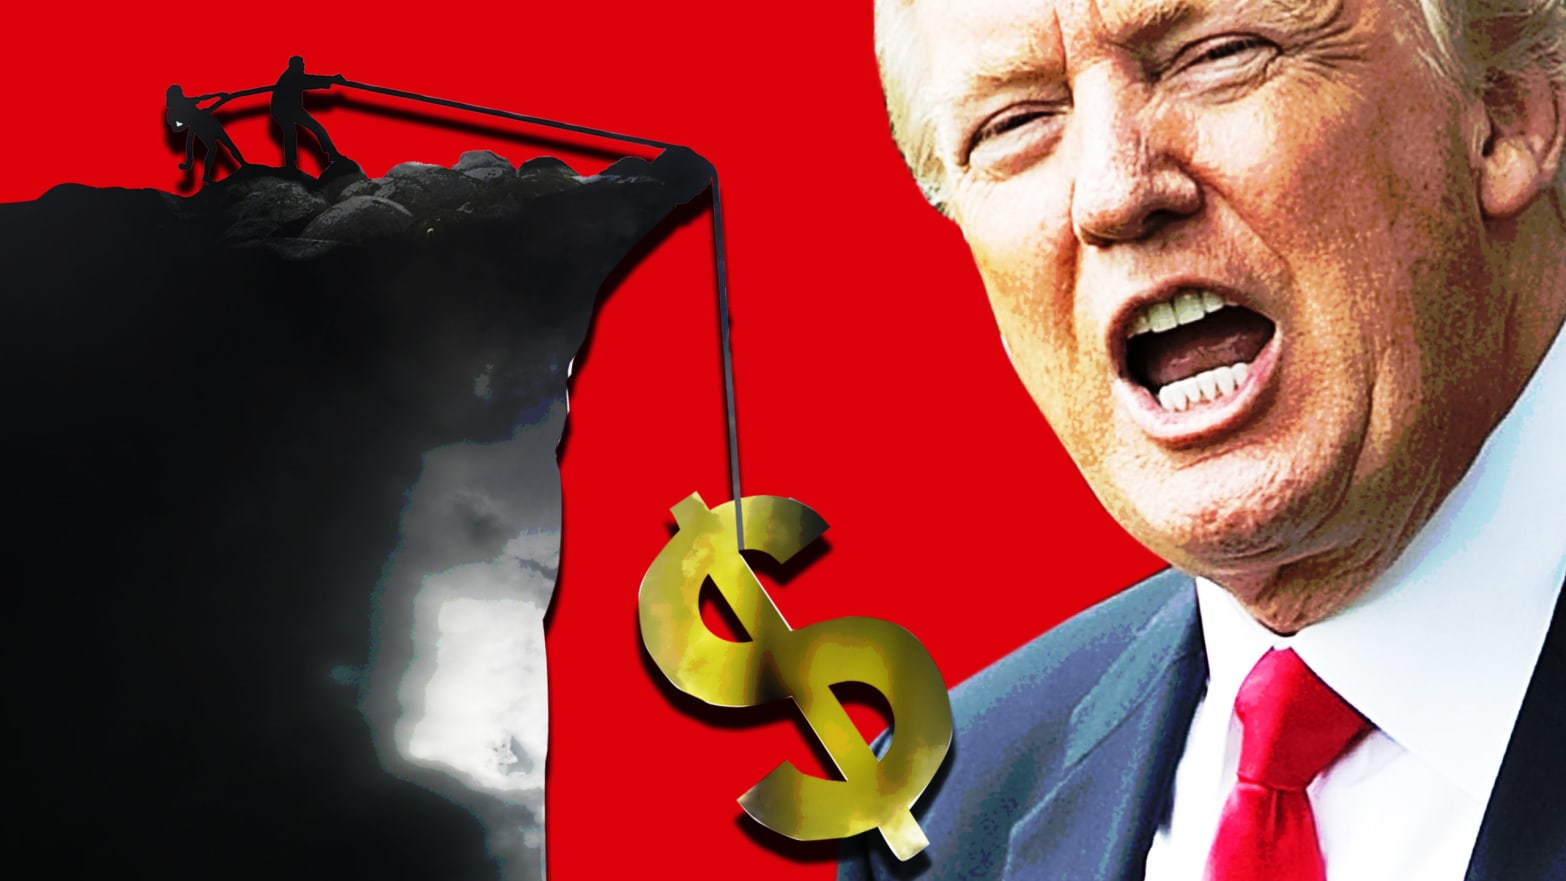 Here's One Thing Trump Is Right About: Time to Ditch the Debt Ceiling